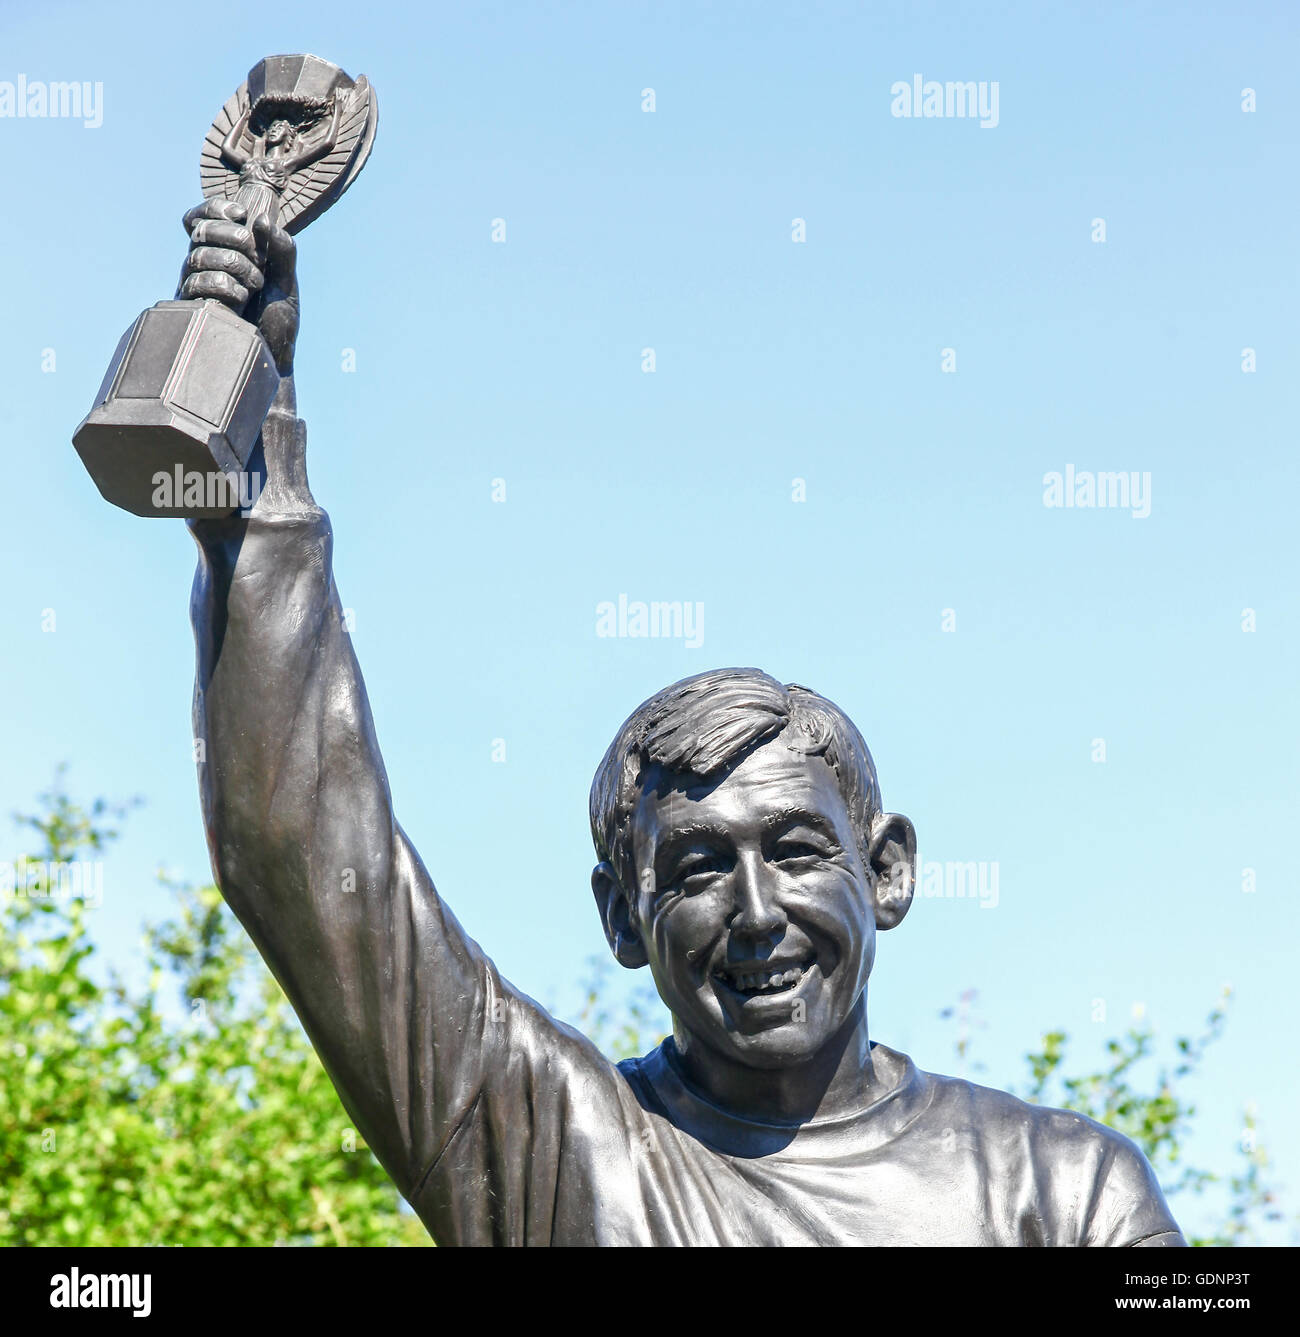 Statue of World Cup winner Gordon Banks outside the Stoke City bet365 stadium or ground Stoke-on-Trent Staffordshire - Stock Image